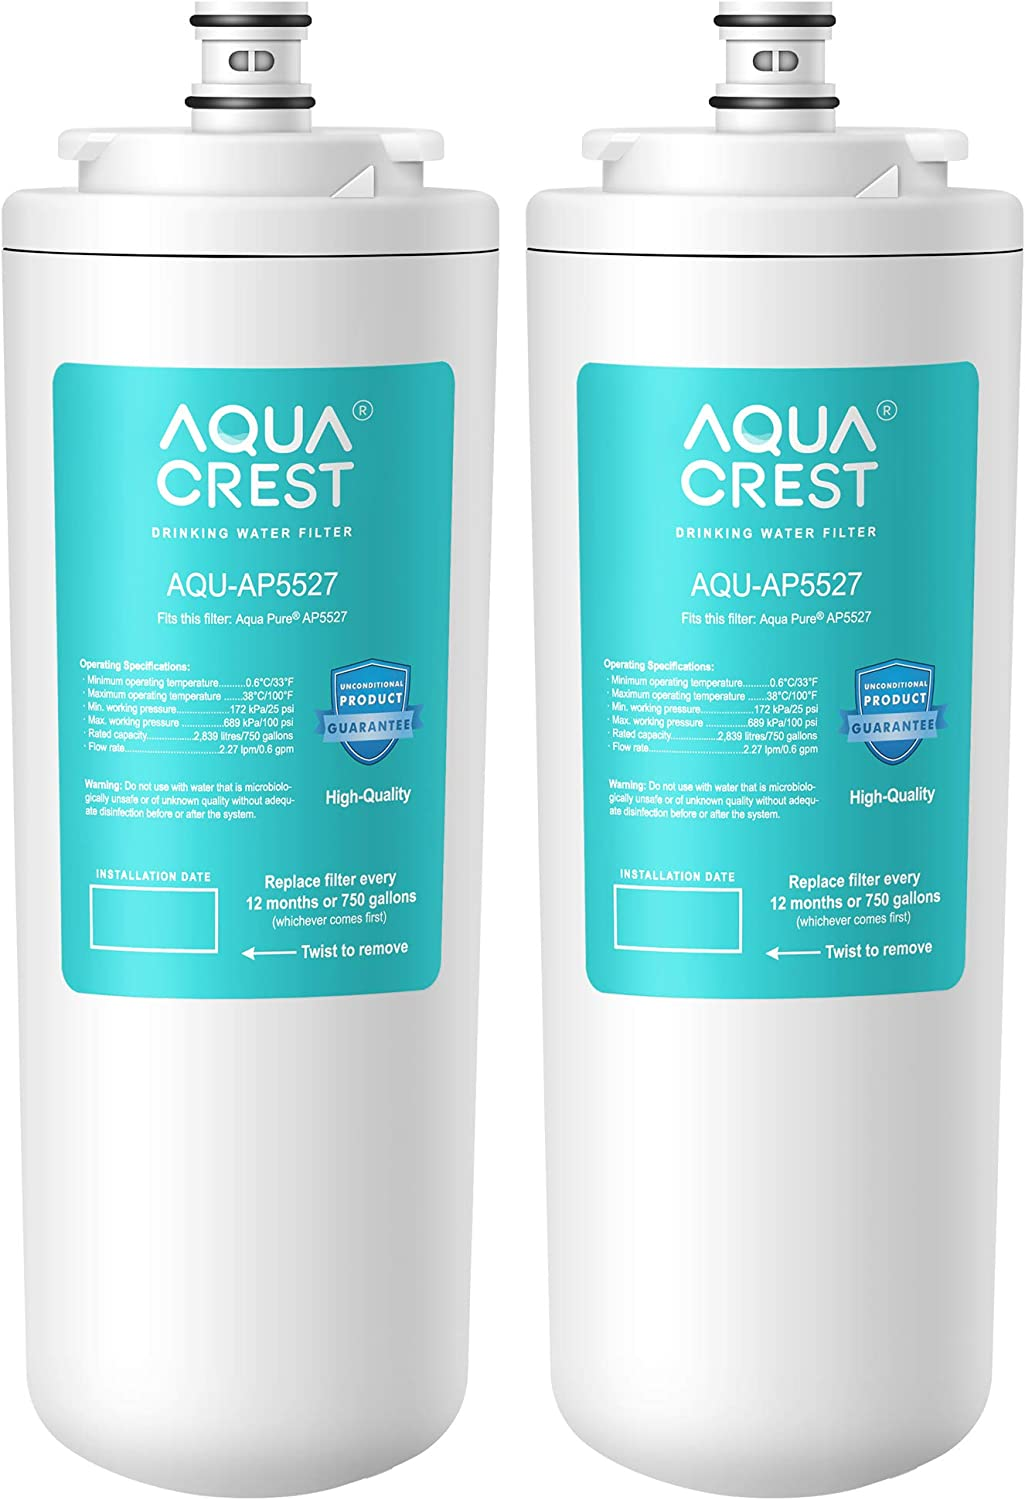 AQUACREST AP5527 Reverse Osmosis Pre and Post Water Filter Cartridge, Compatible with Aqua-Pure AP5527, 5598101, AP-RO5500, APRO5500 Reverse Osmosis System (1 Set)